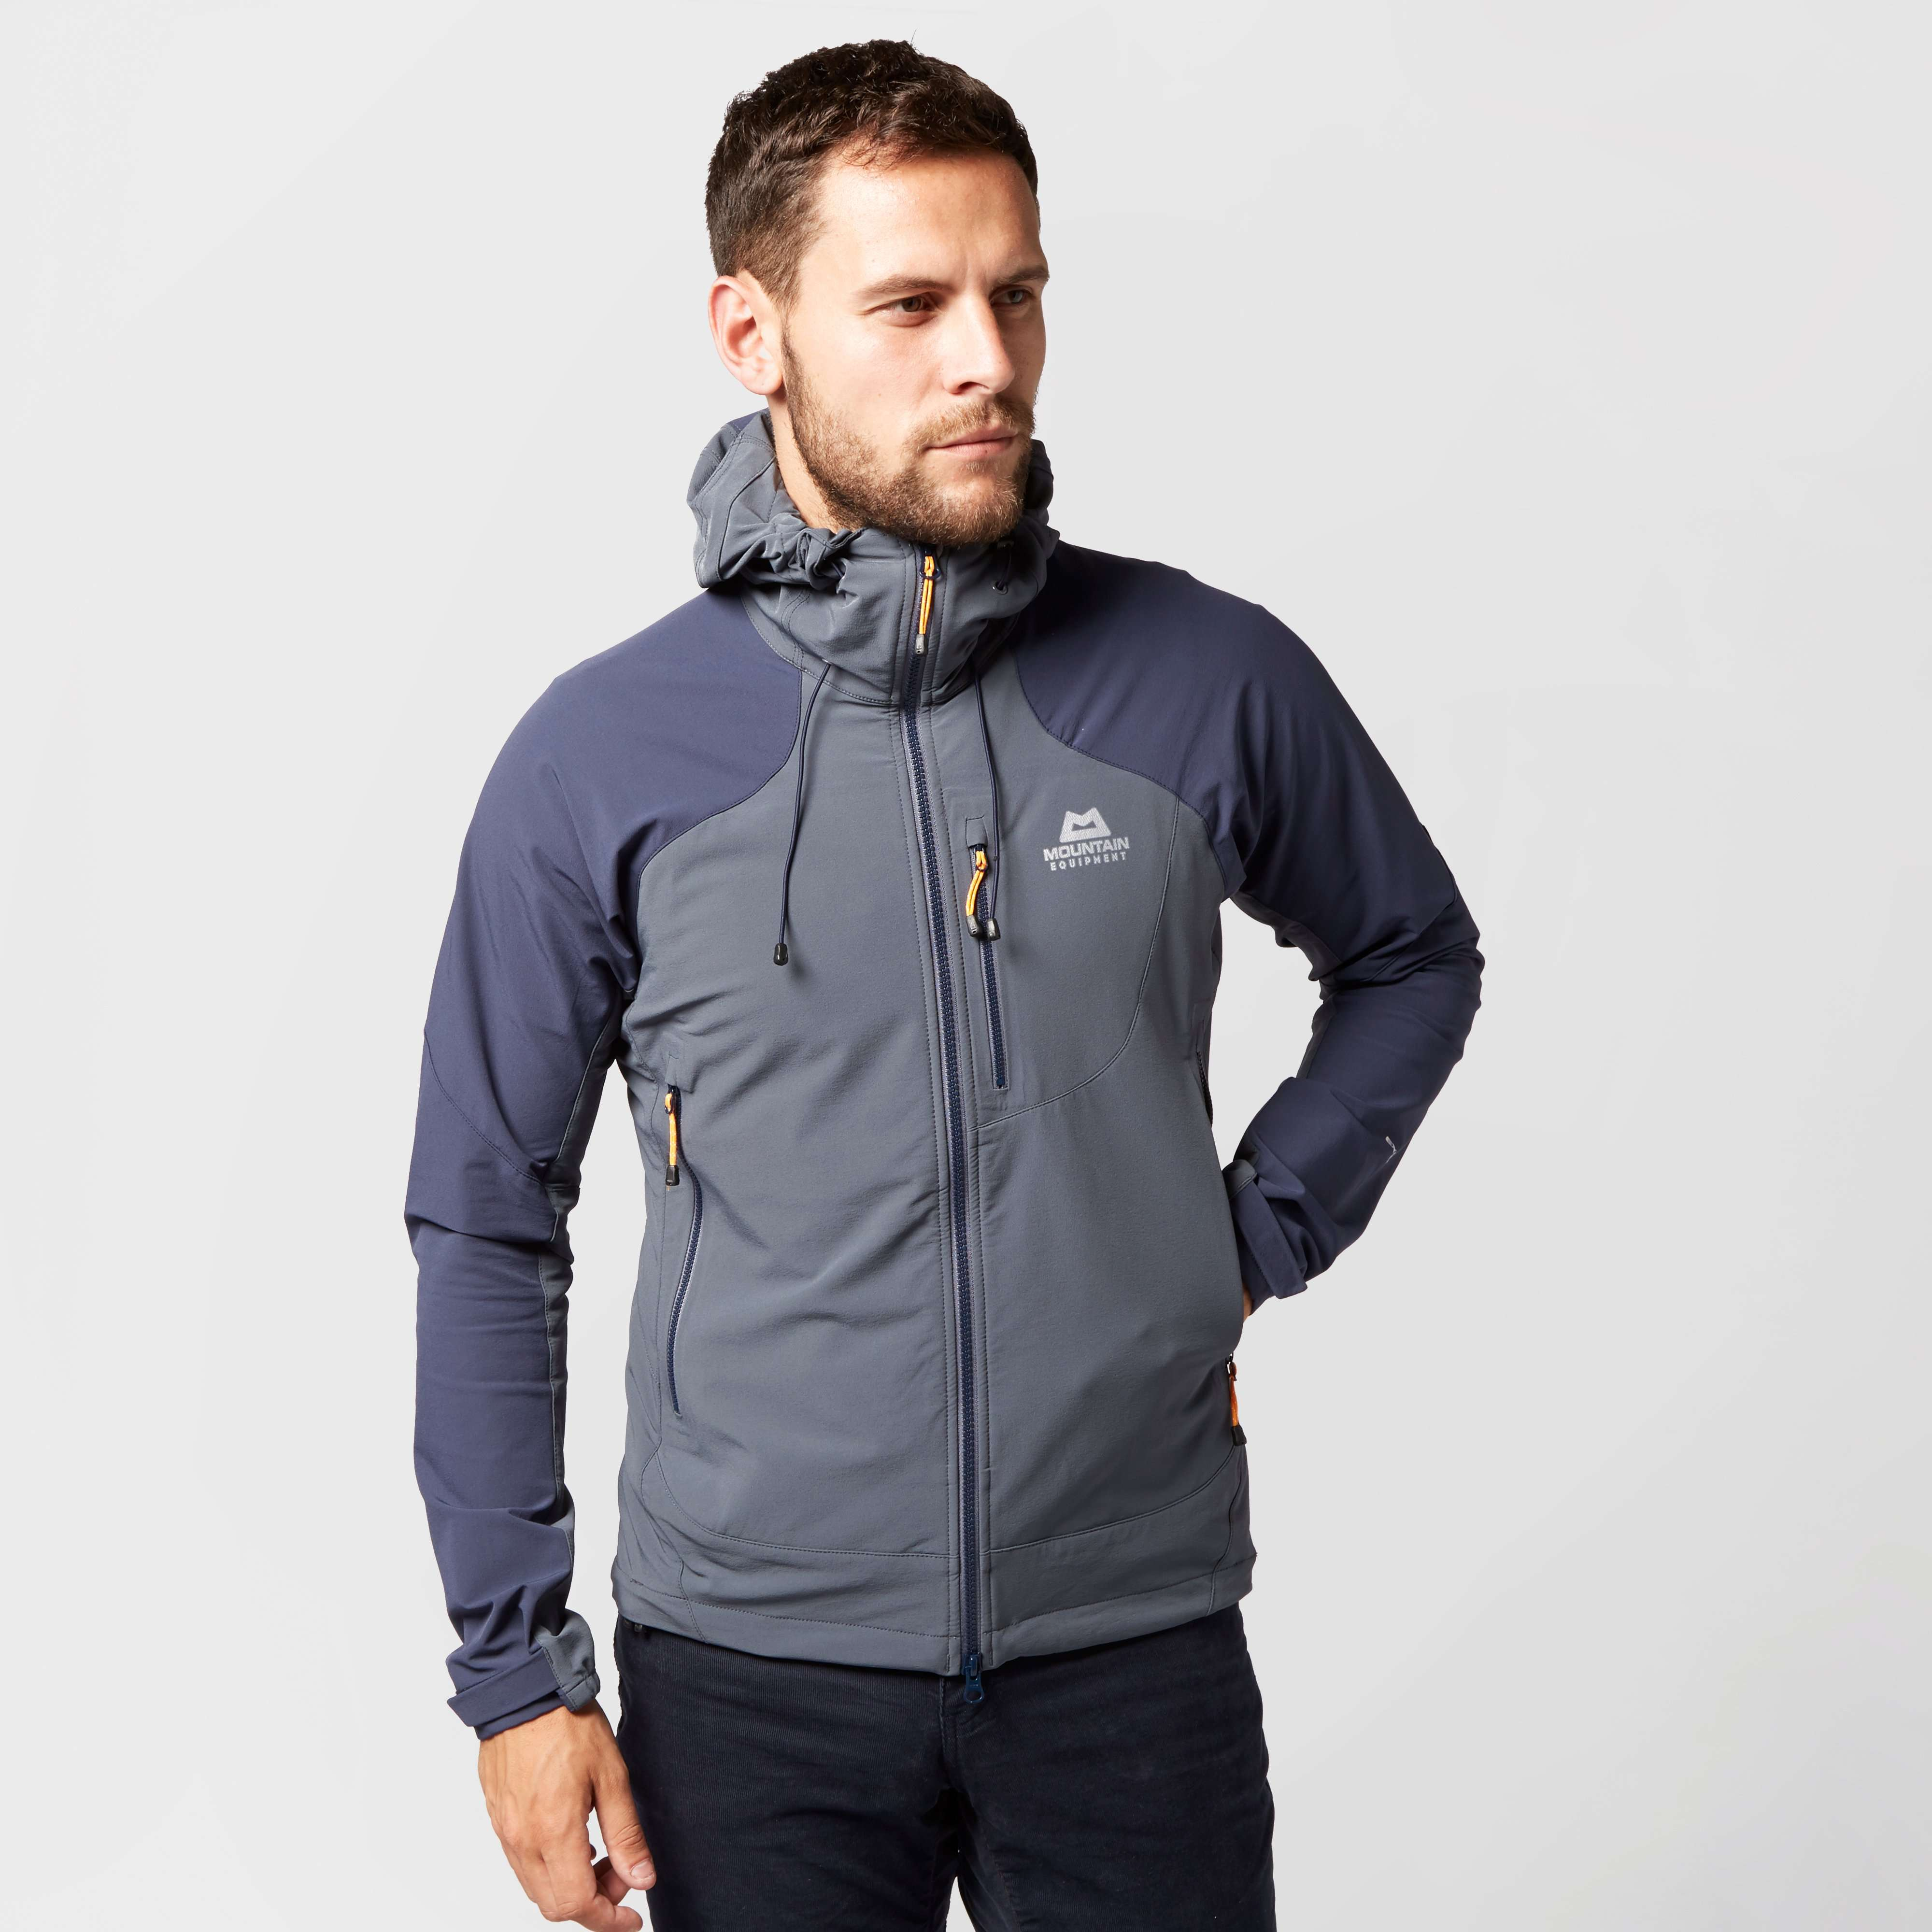 MOUNTAIN EQUIPMENT Men's Frontier Hooded Soft Shell Jacket